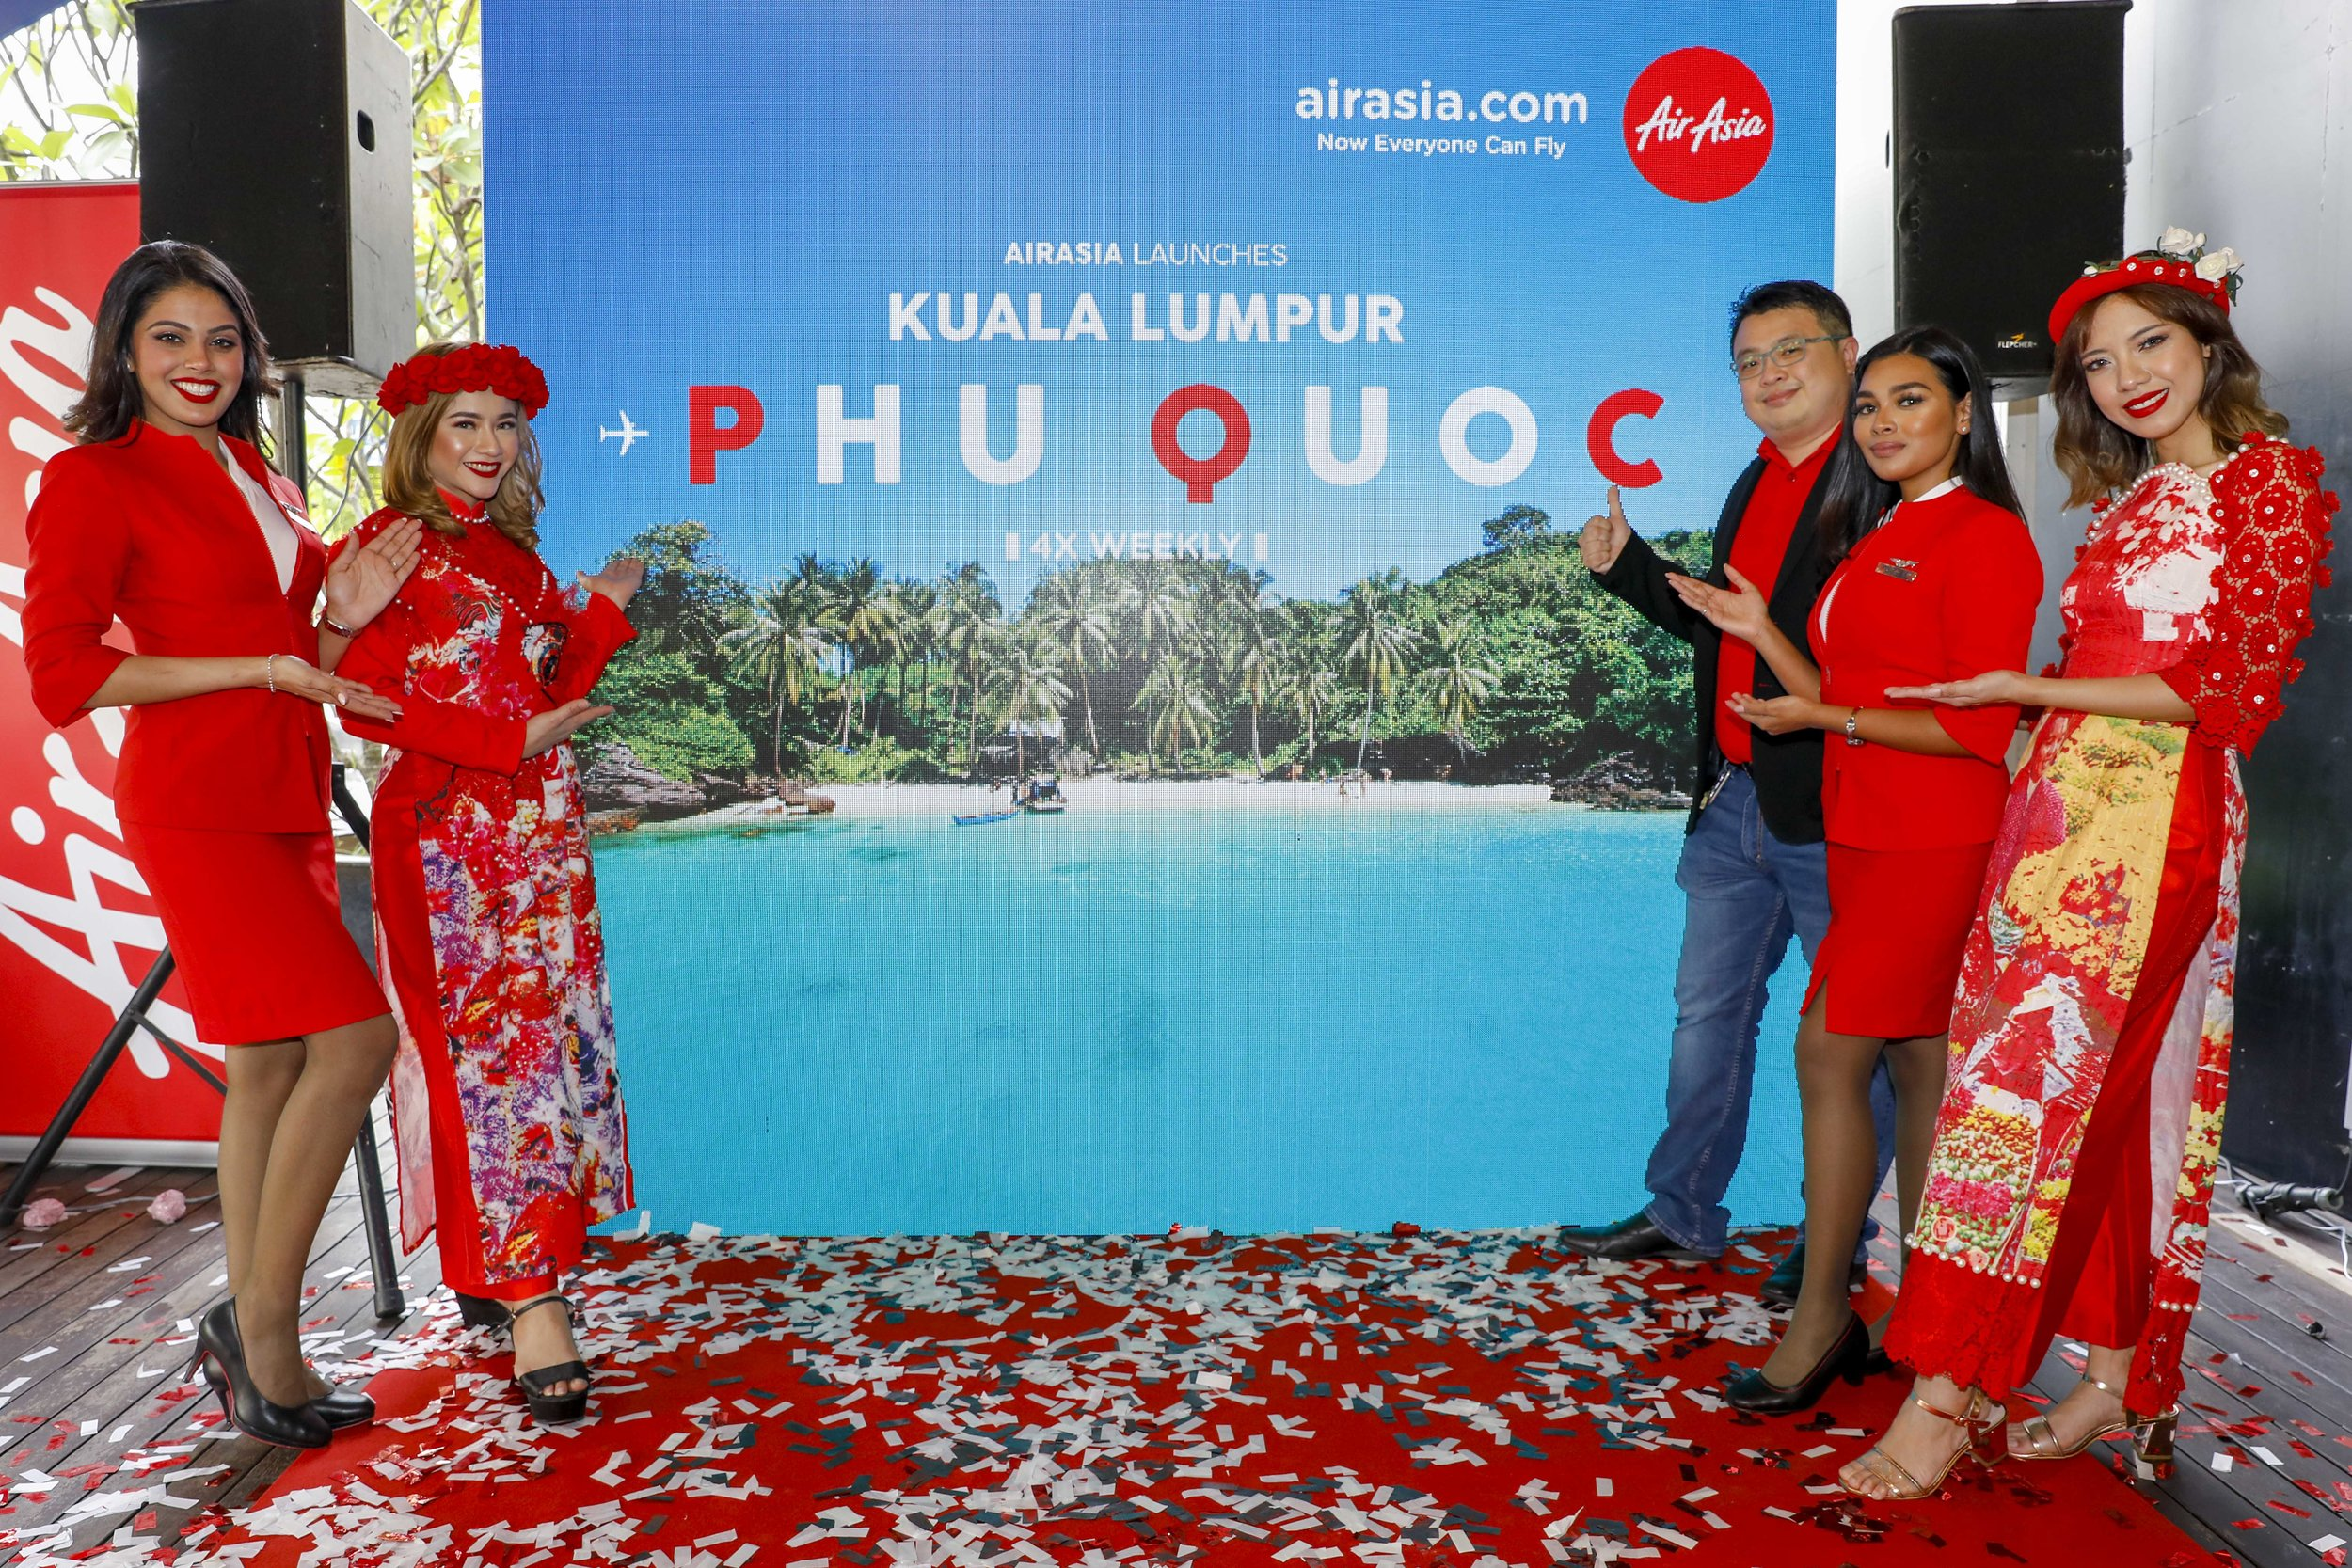 Photo Caption:Spencer Lee, AirAsia Malaysia Head of Commercial, unveiling AirAsia's new route from Kuala Lumpur to Phu Quoc, Vietnam.